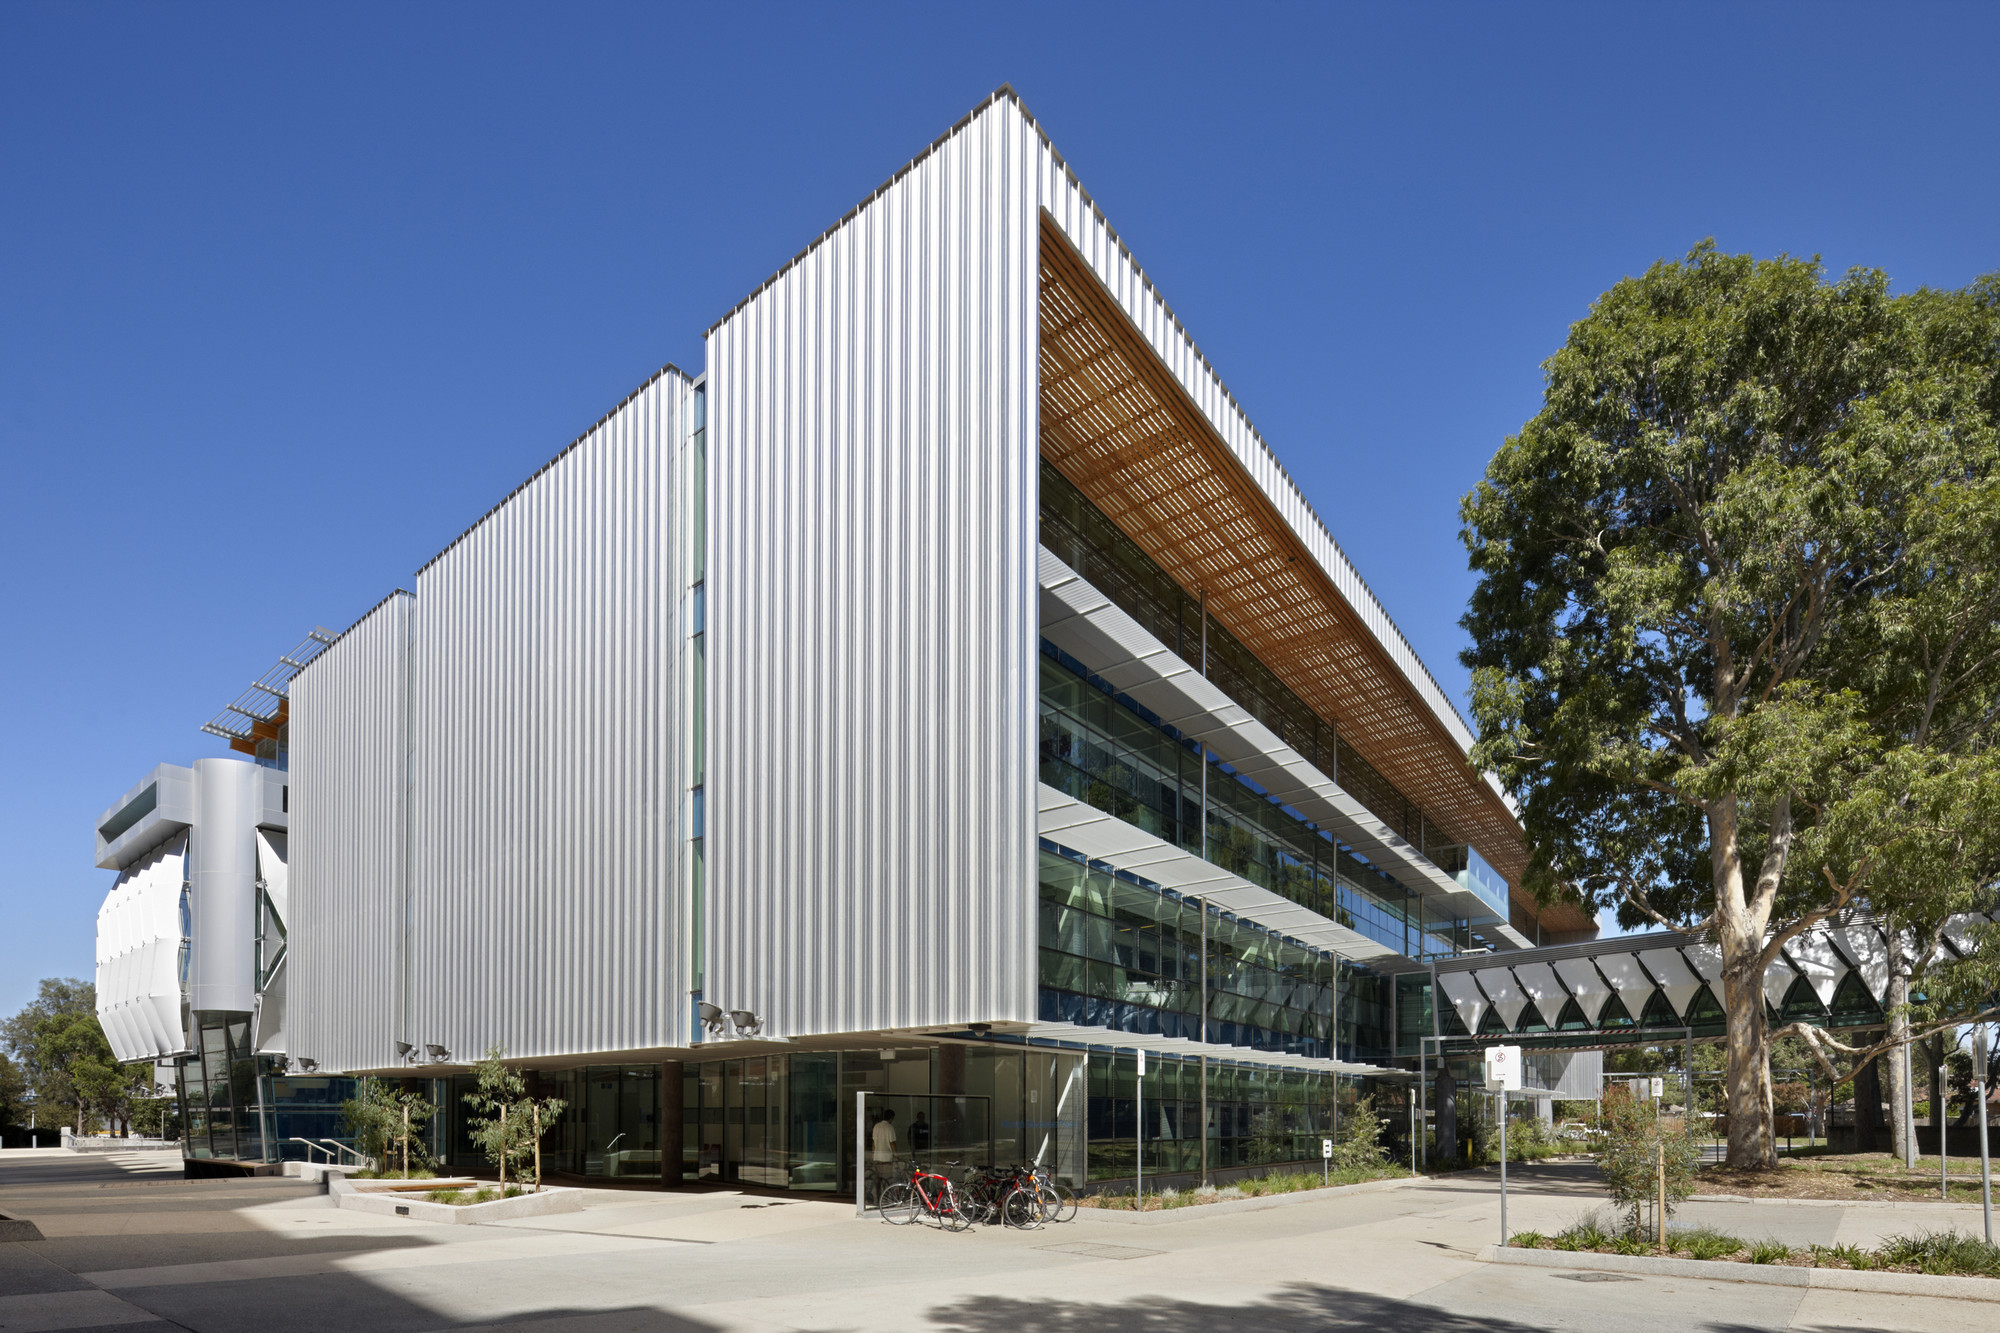 Monash University Science Technology Research and Innovation Precinct Stage 2 (Biomedical Sciences Buildings) / DesignInc, © Dianna Snape